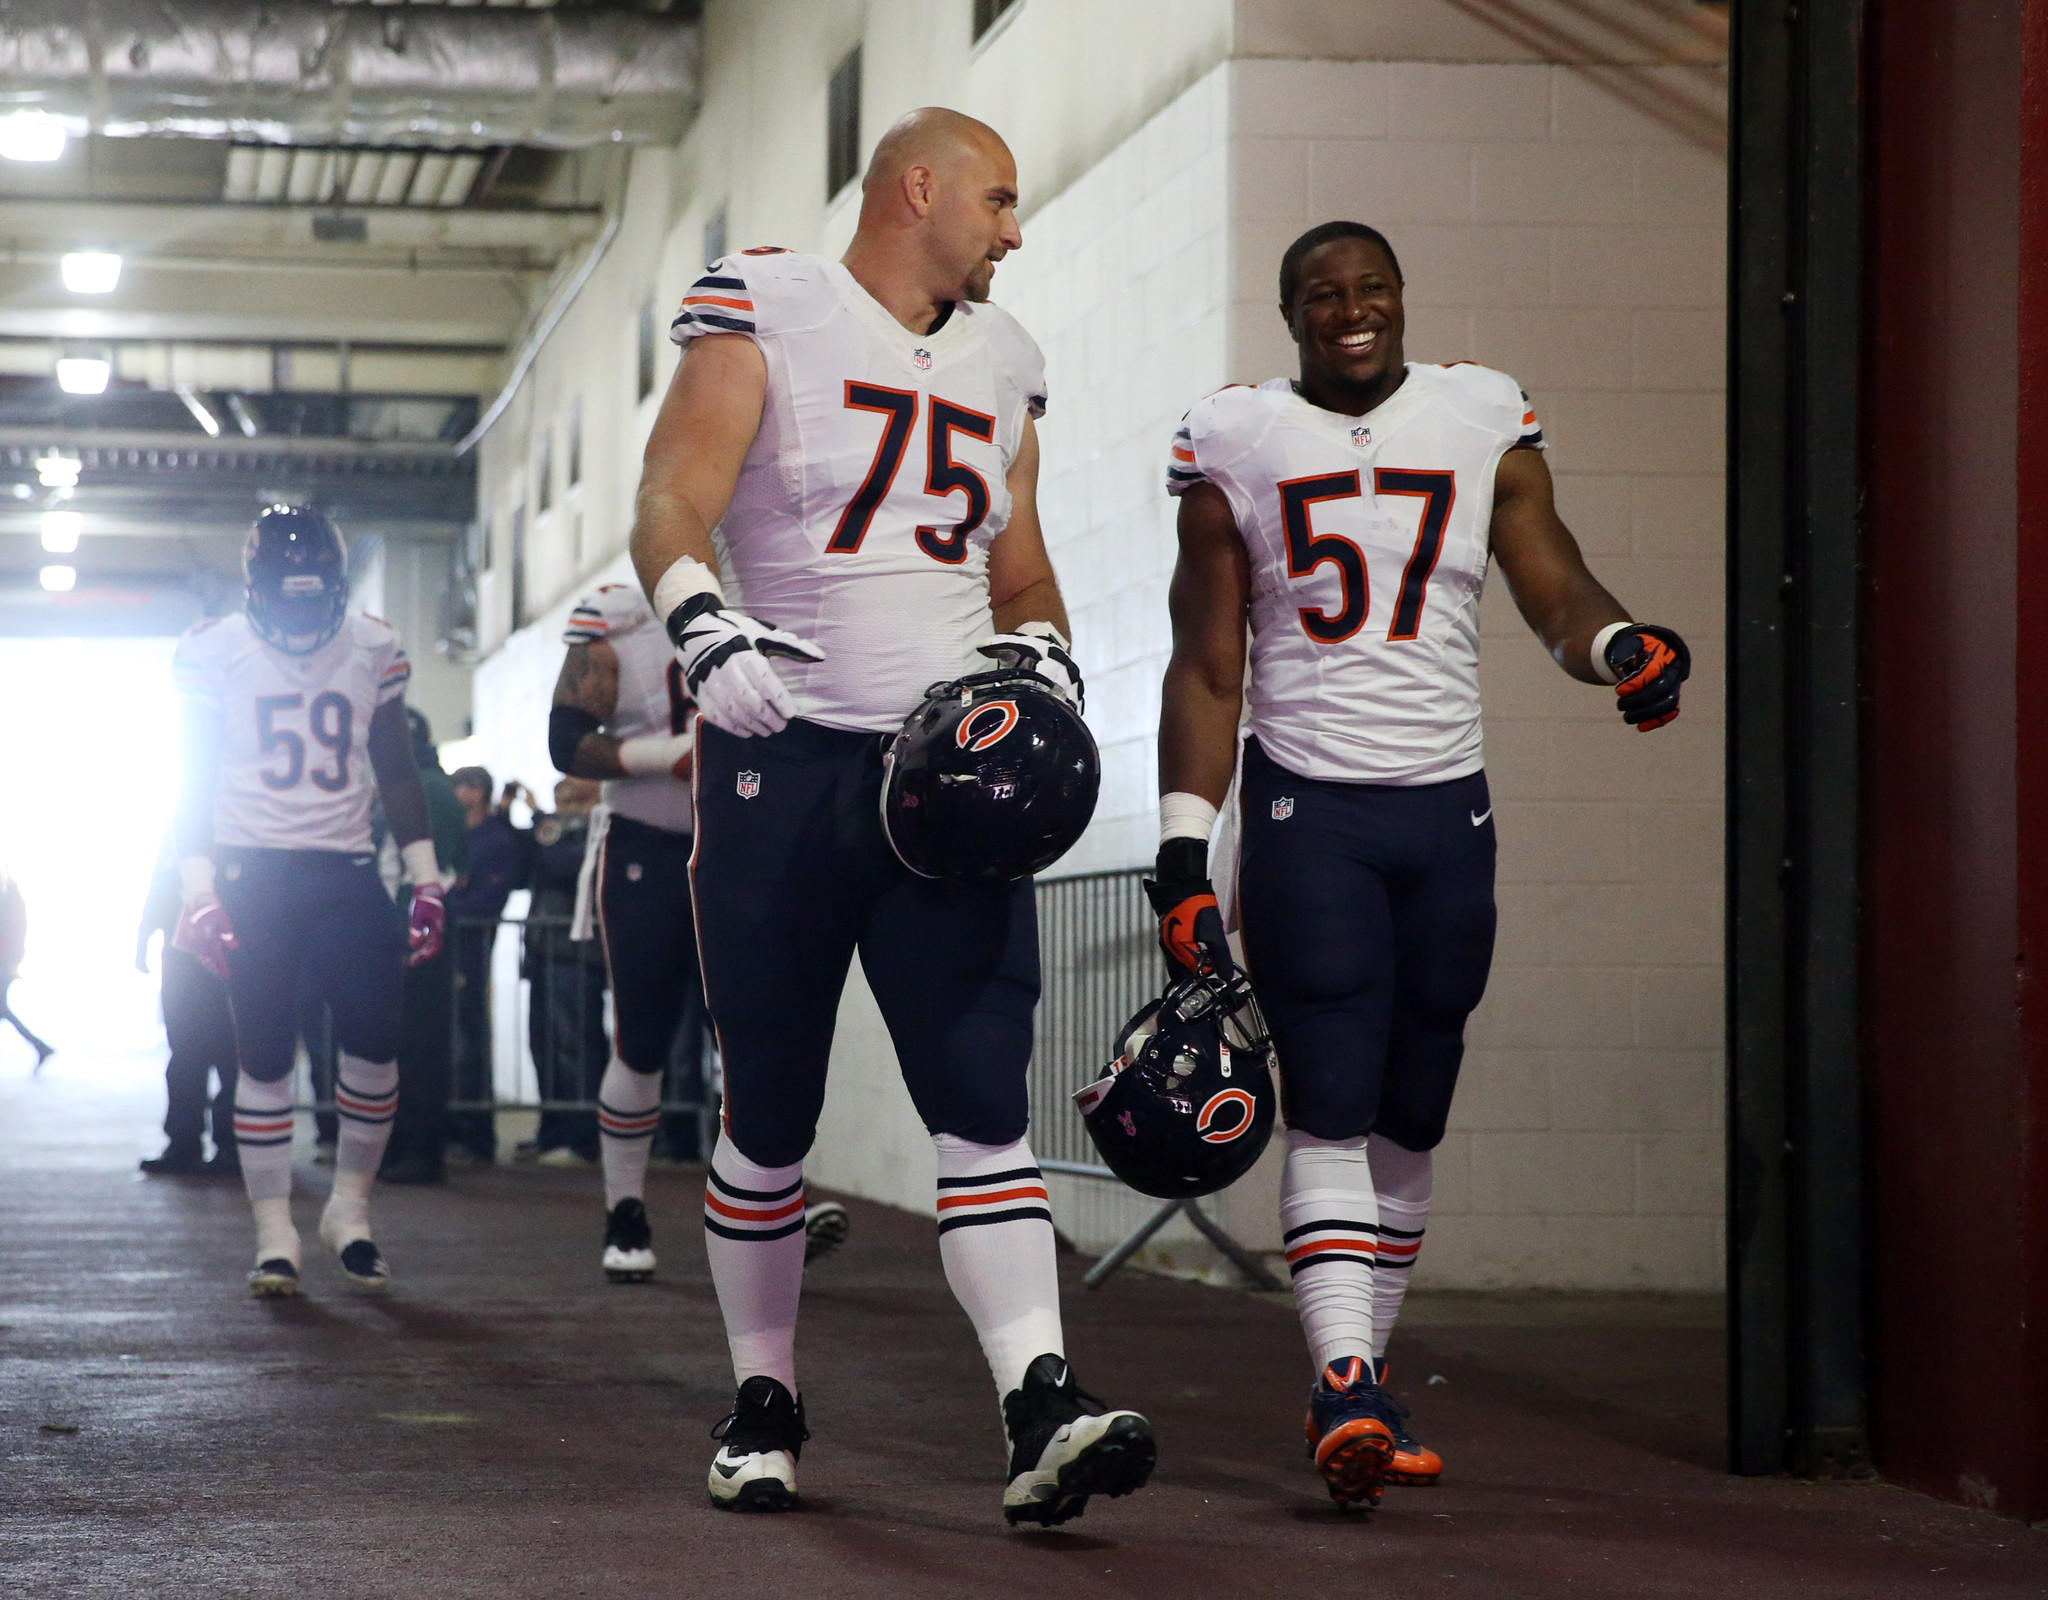 Bears offensive guard Kyle Long and linebacker Jon Bostic take the field.